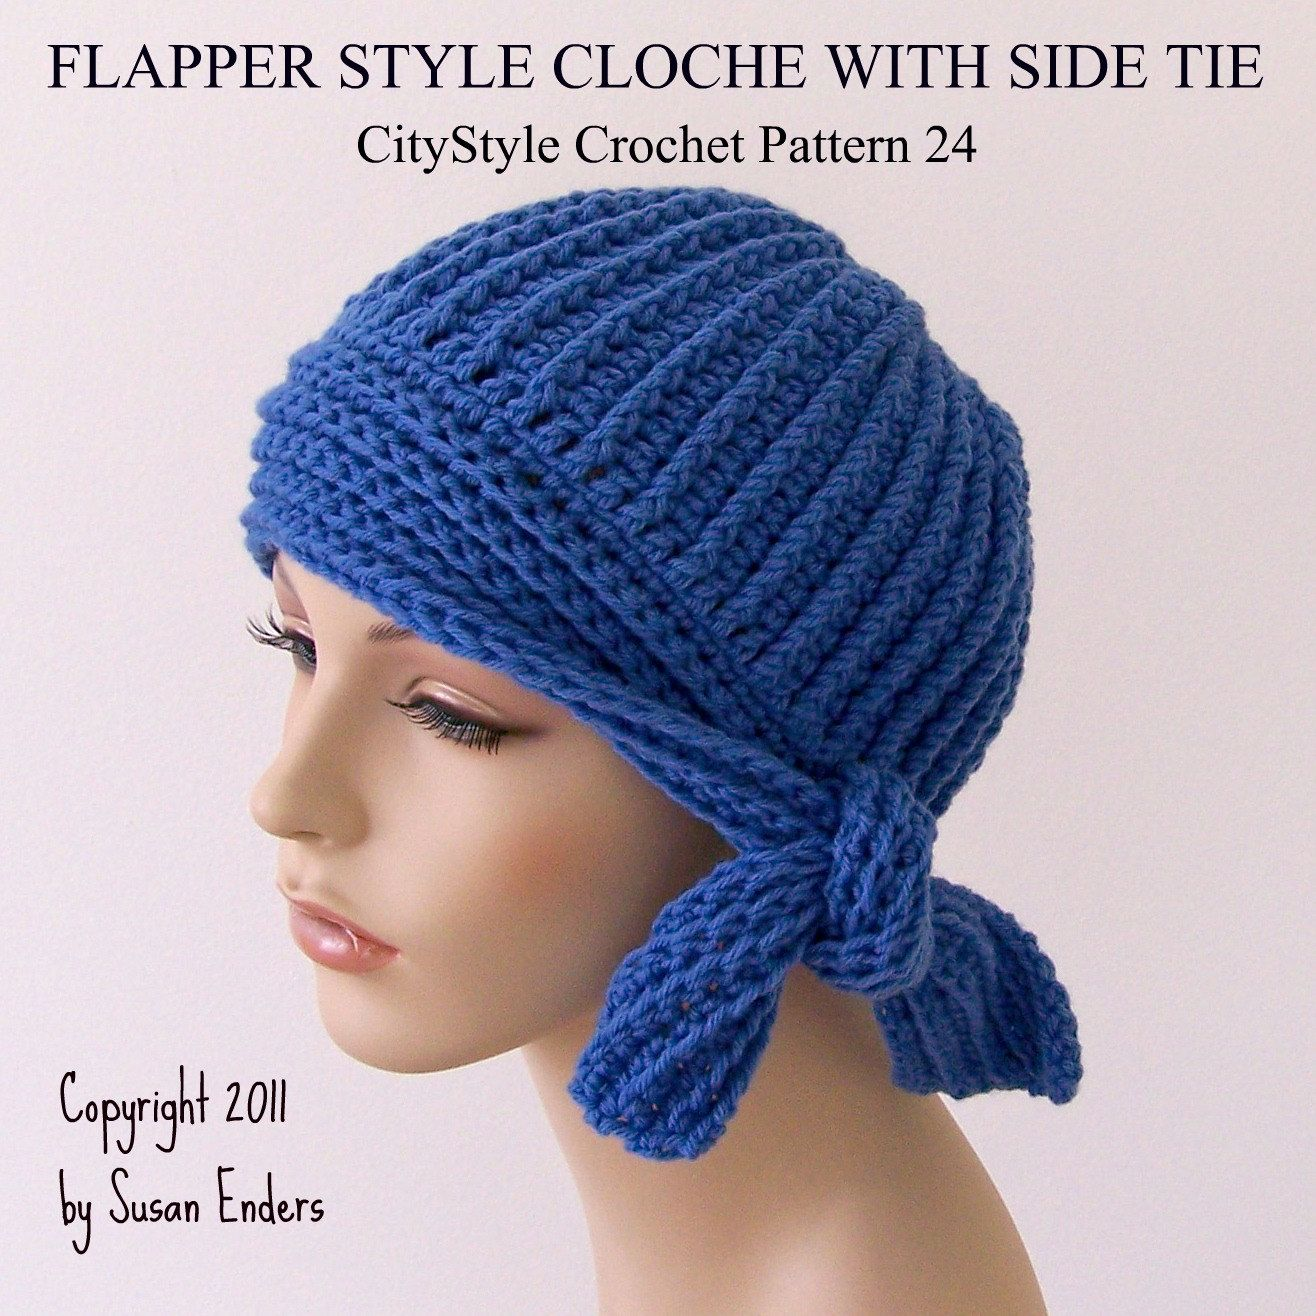 Crochet pattern hat flapper style cloche with side tie easy crochet pattern hat flapper style cloche with side tie easy womens crochet hat pattern 1920s flapper hat pdf instant digital download bankloansurffo Images